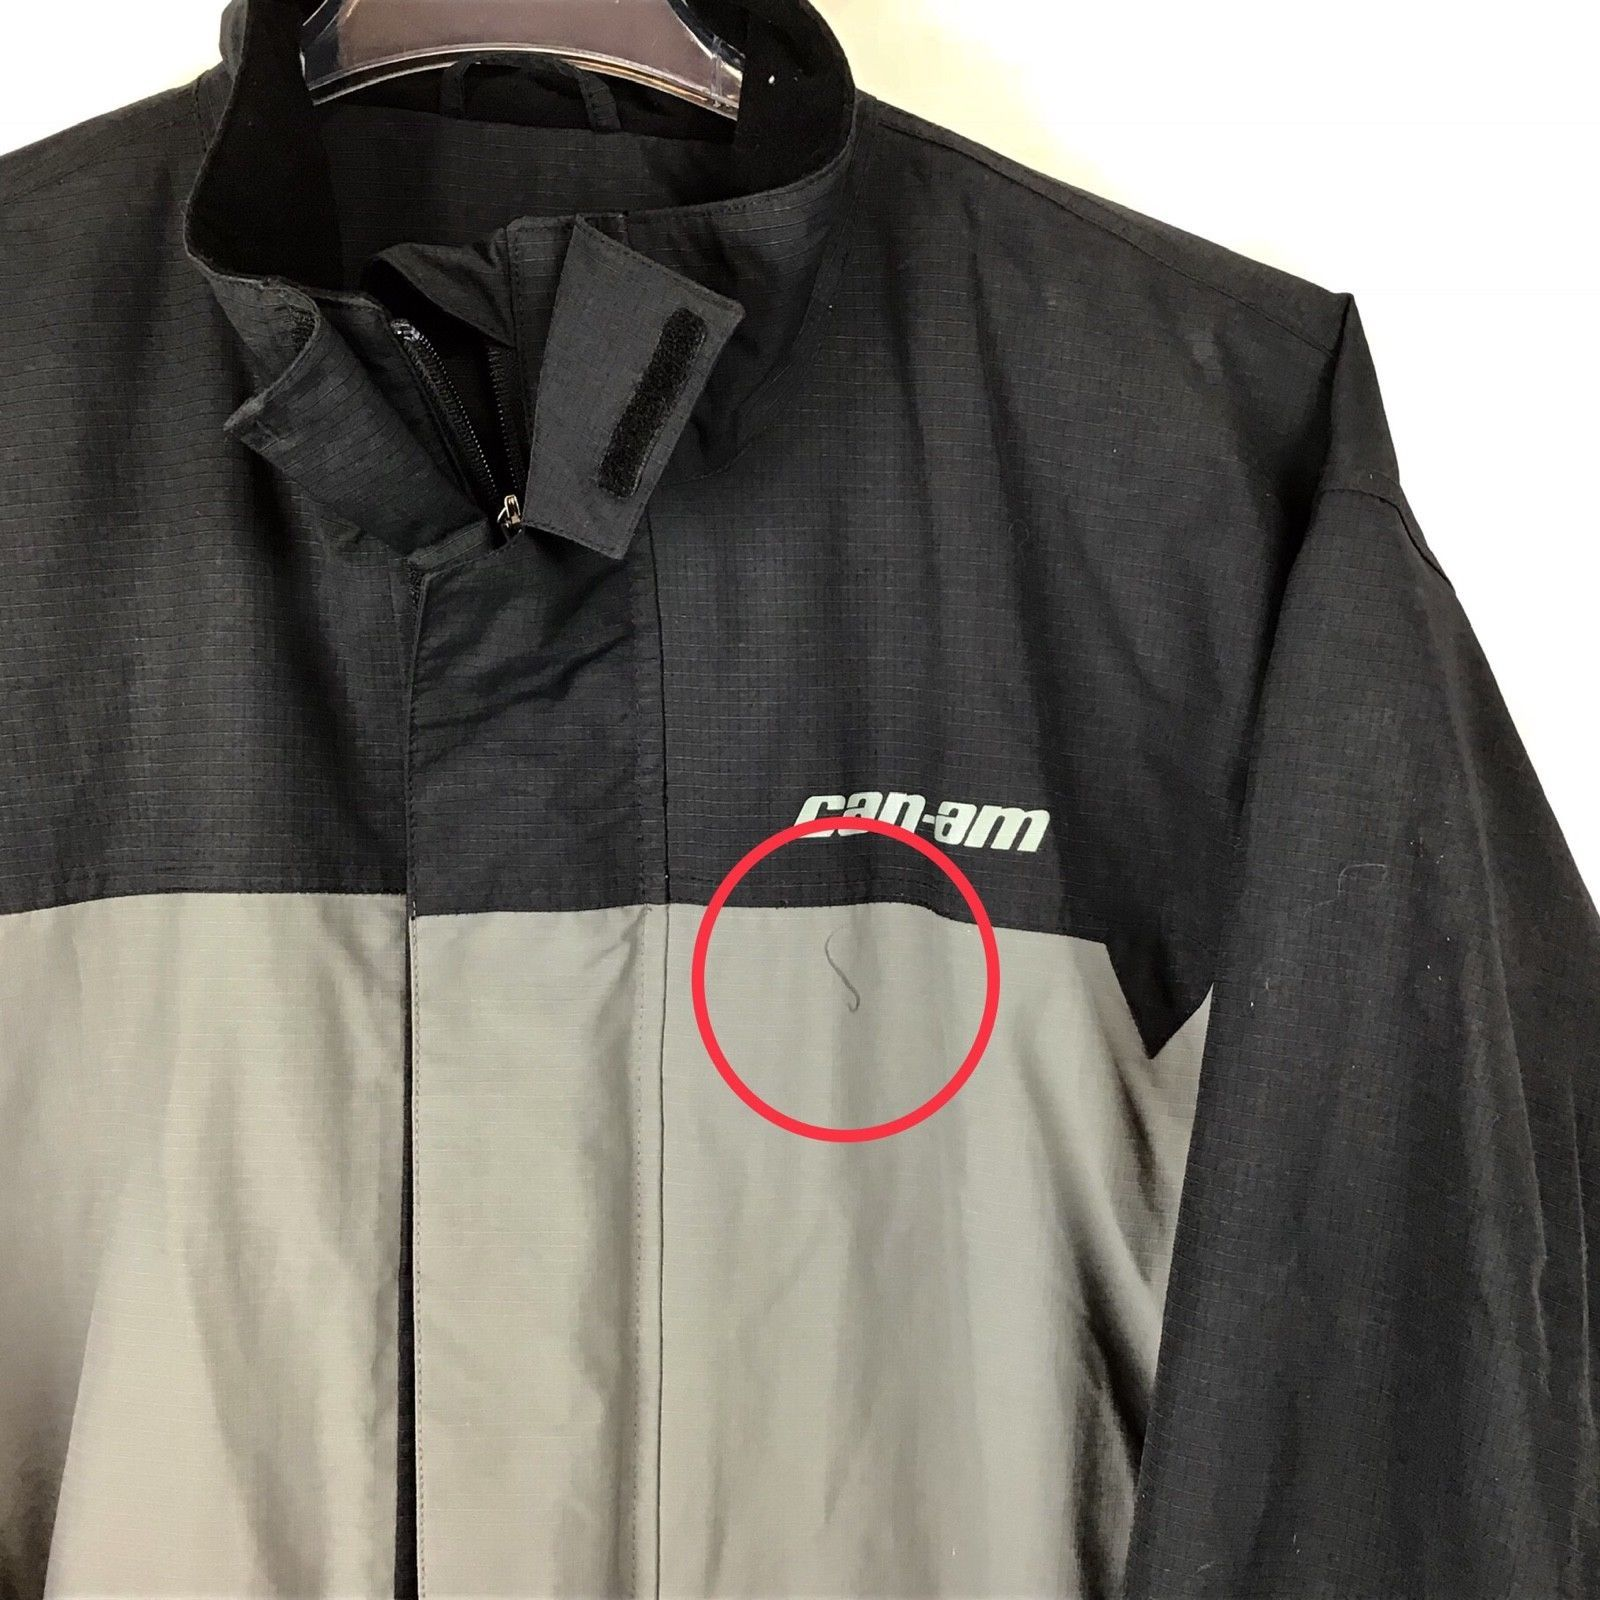 CanAm BRP XXL Mens Rain Riding Jacket 2XL FLAWED Nylon Black Spyder NWT A9-21 image 2